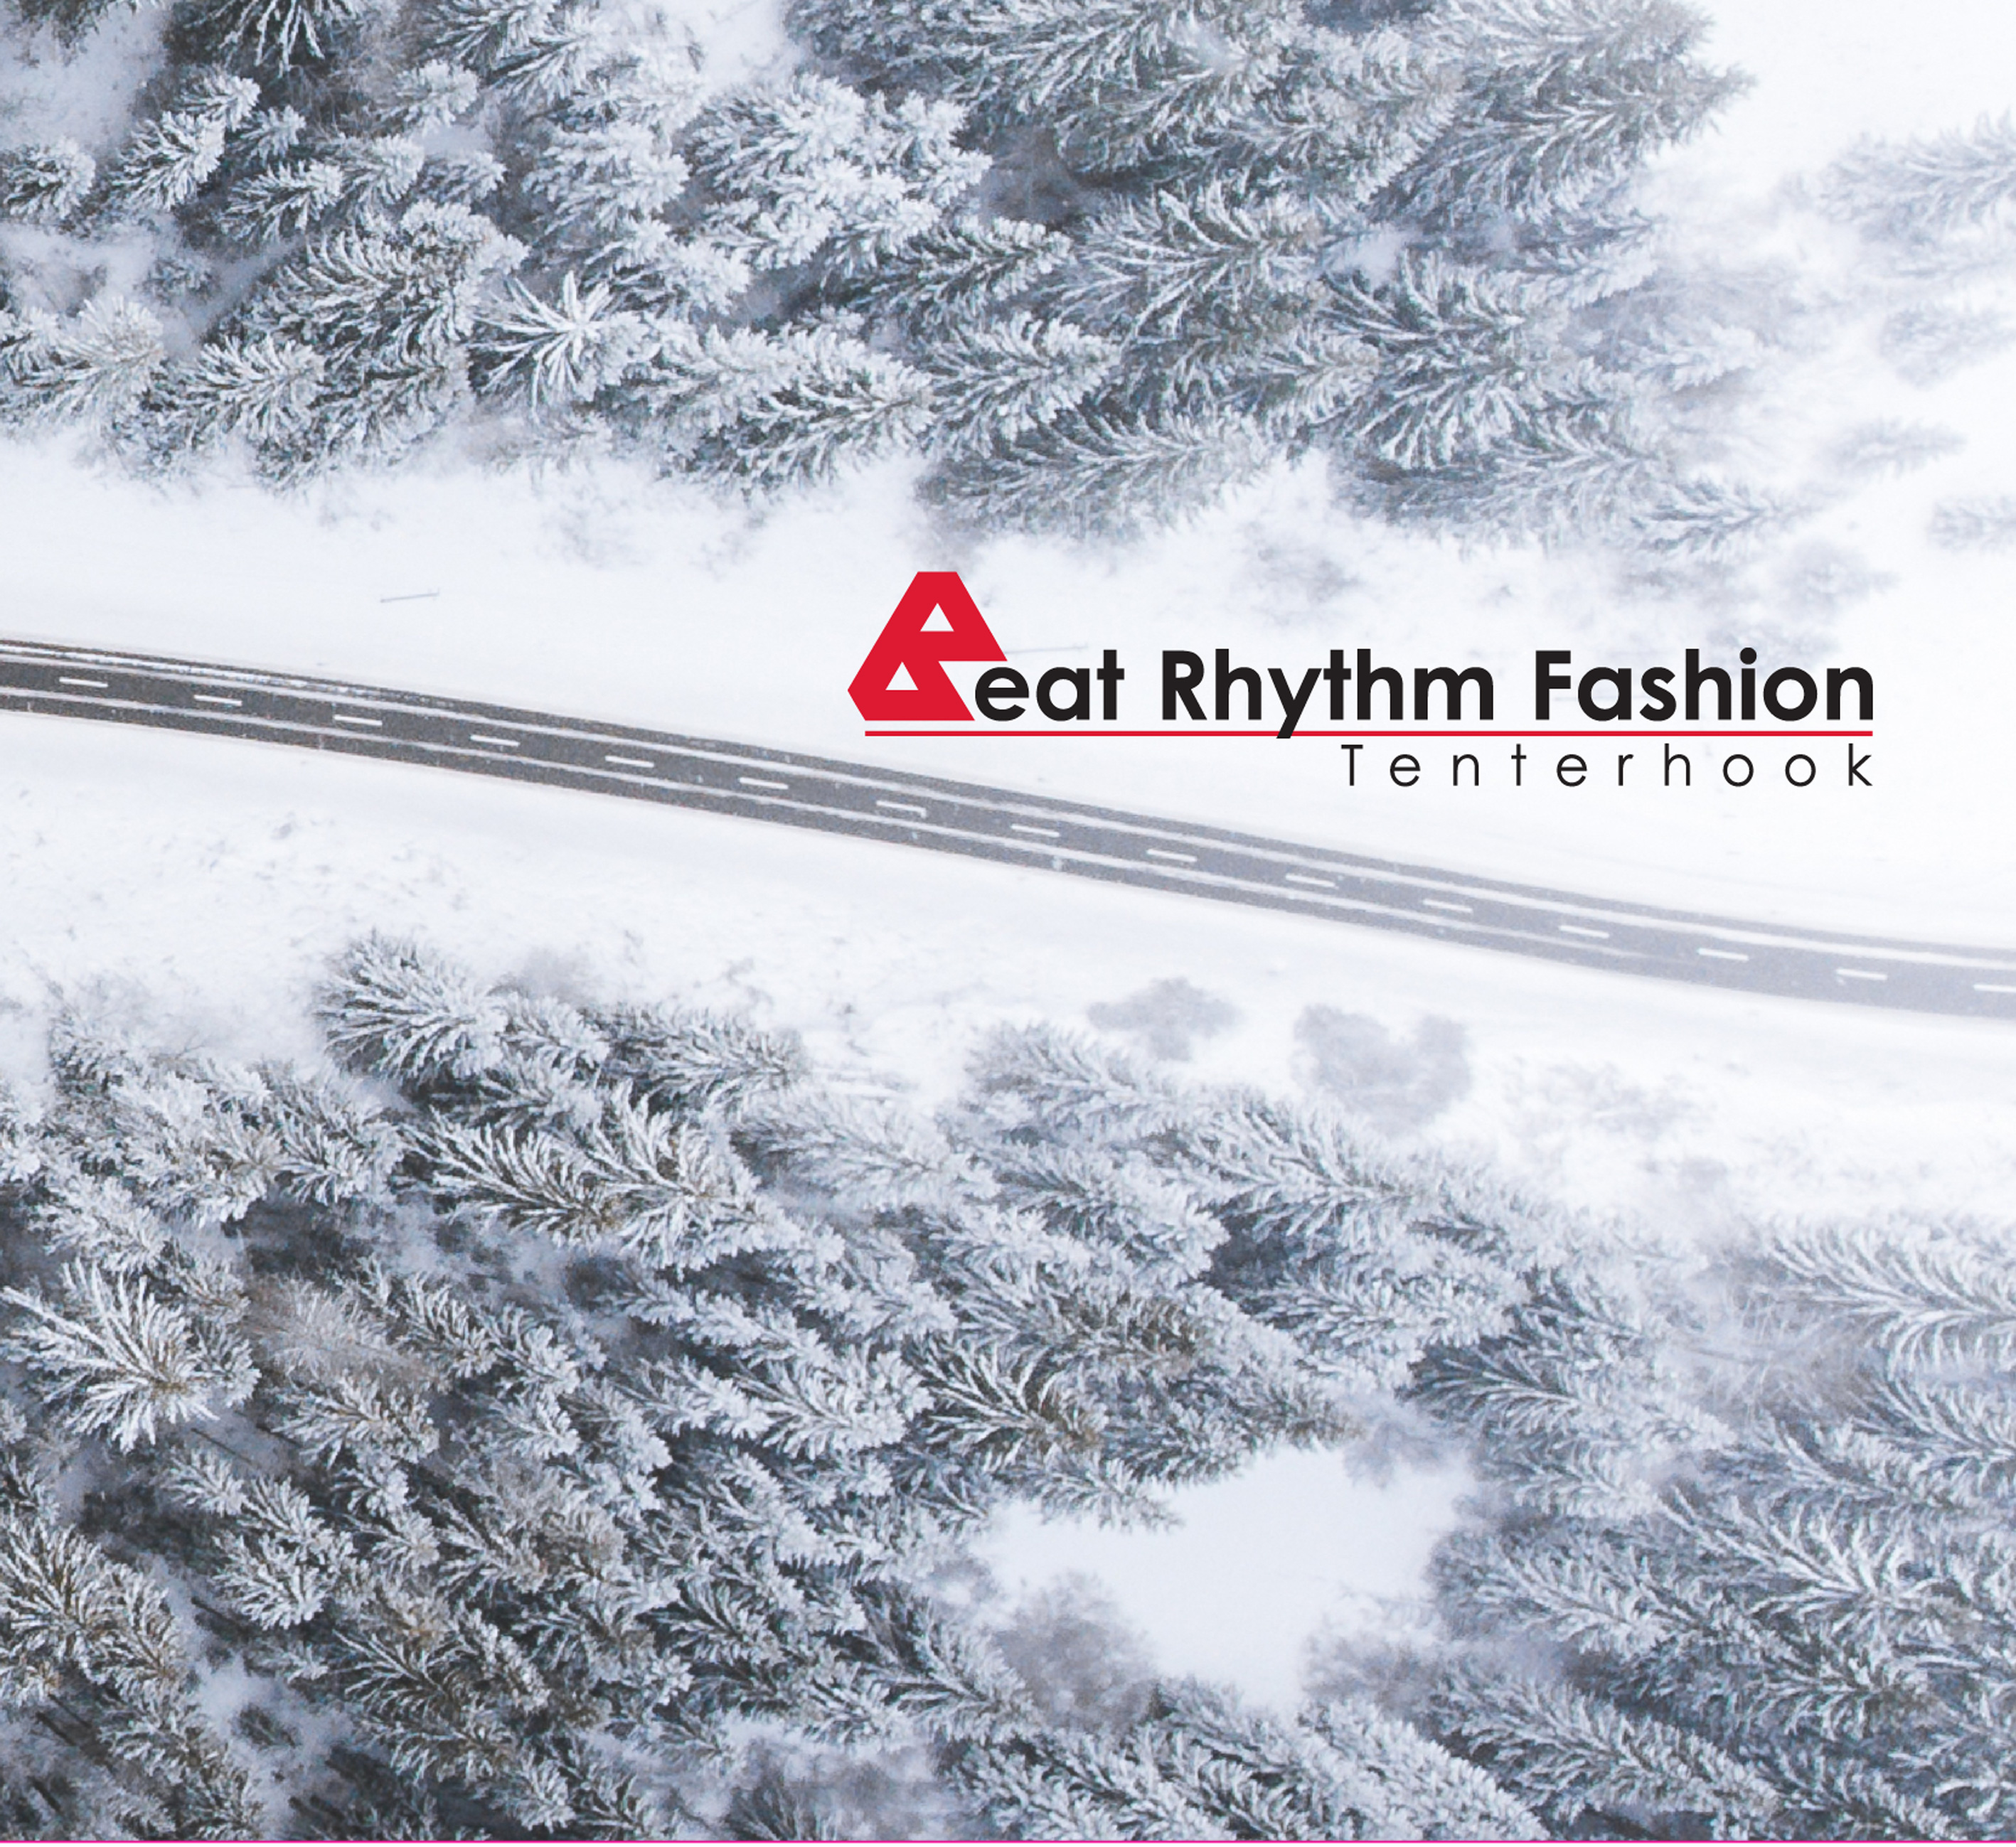 Beat_Rhythm_Fashion_Tenterhook_cover